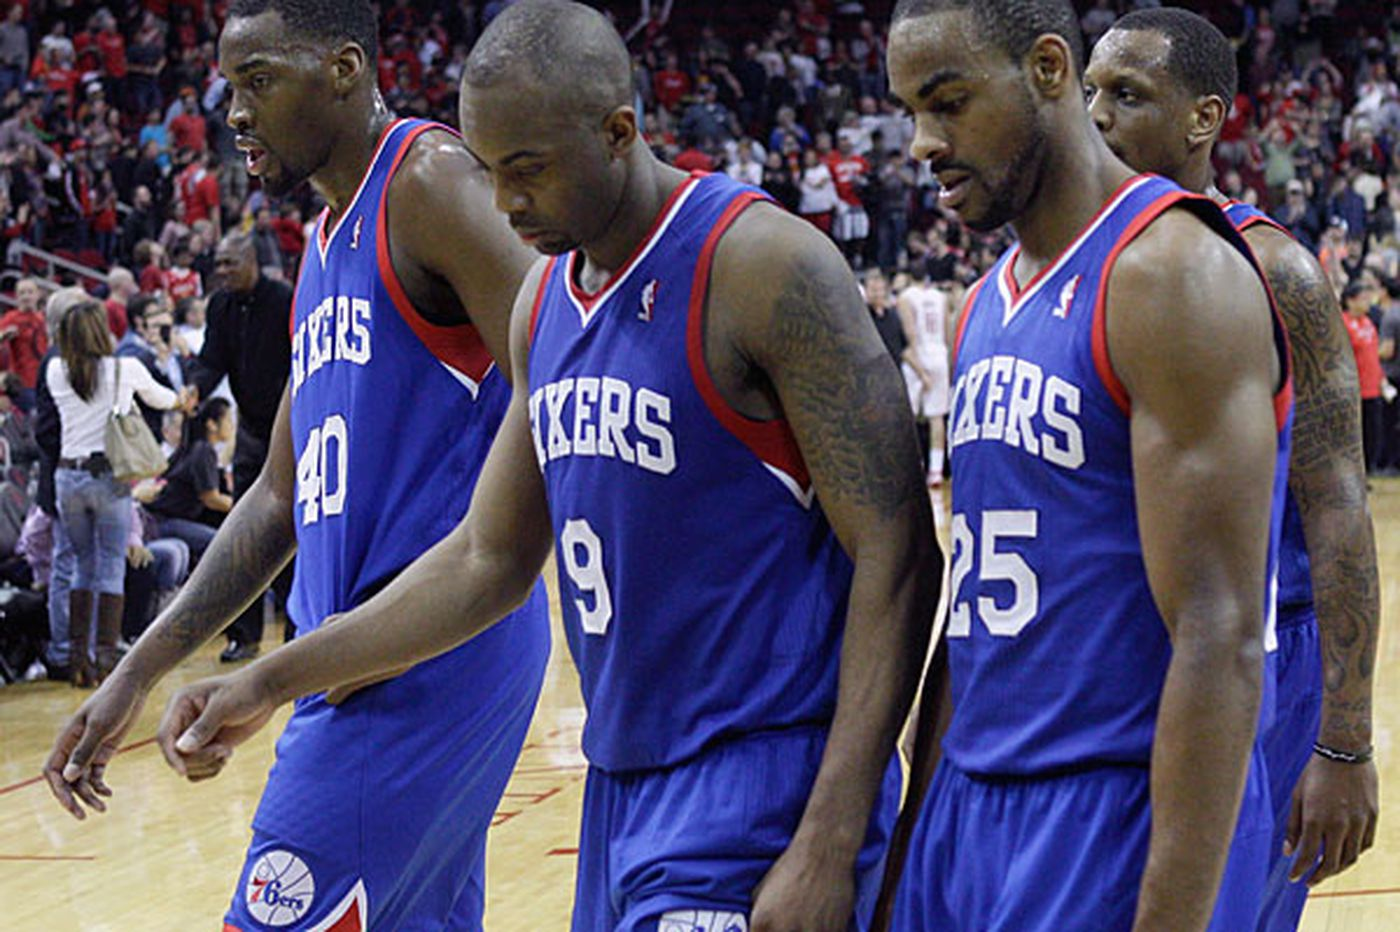 A long, trying season for Sixers